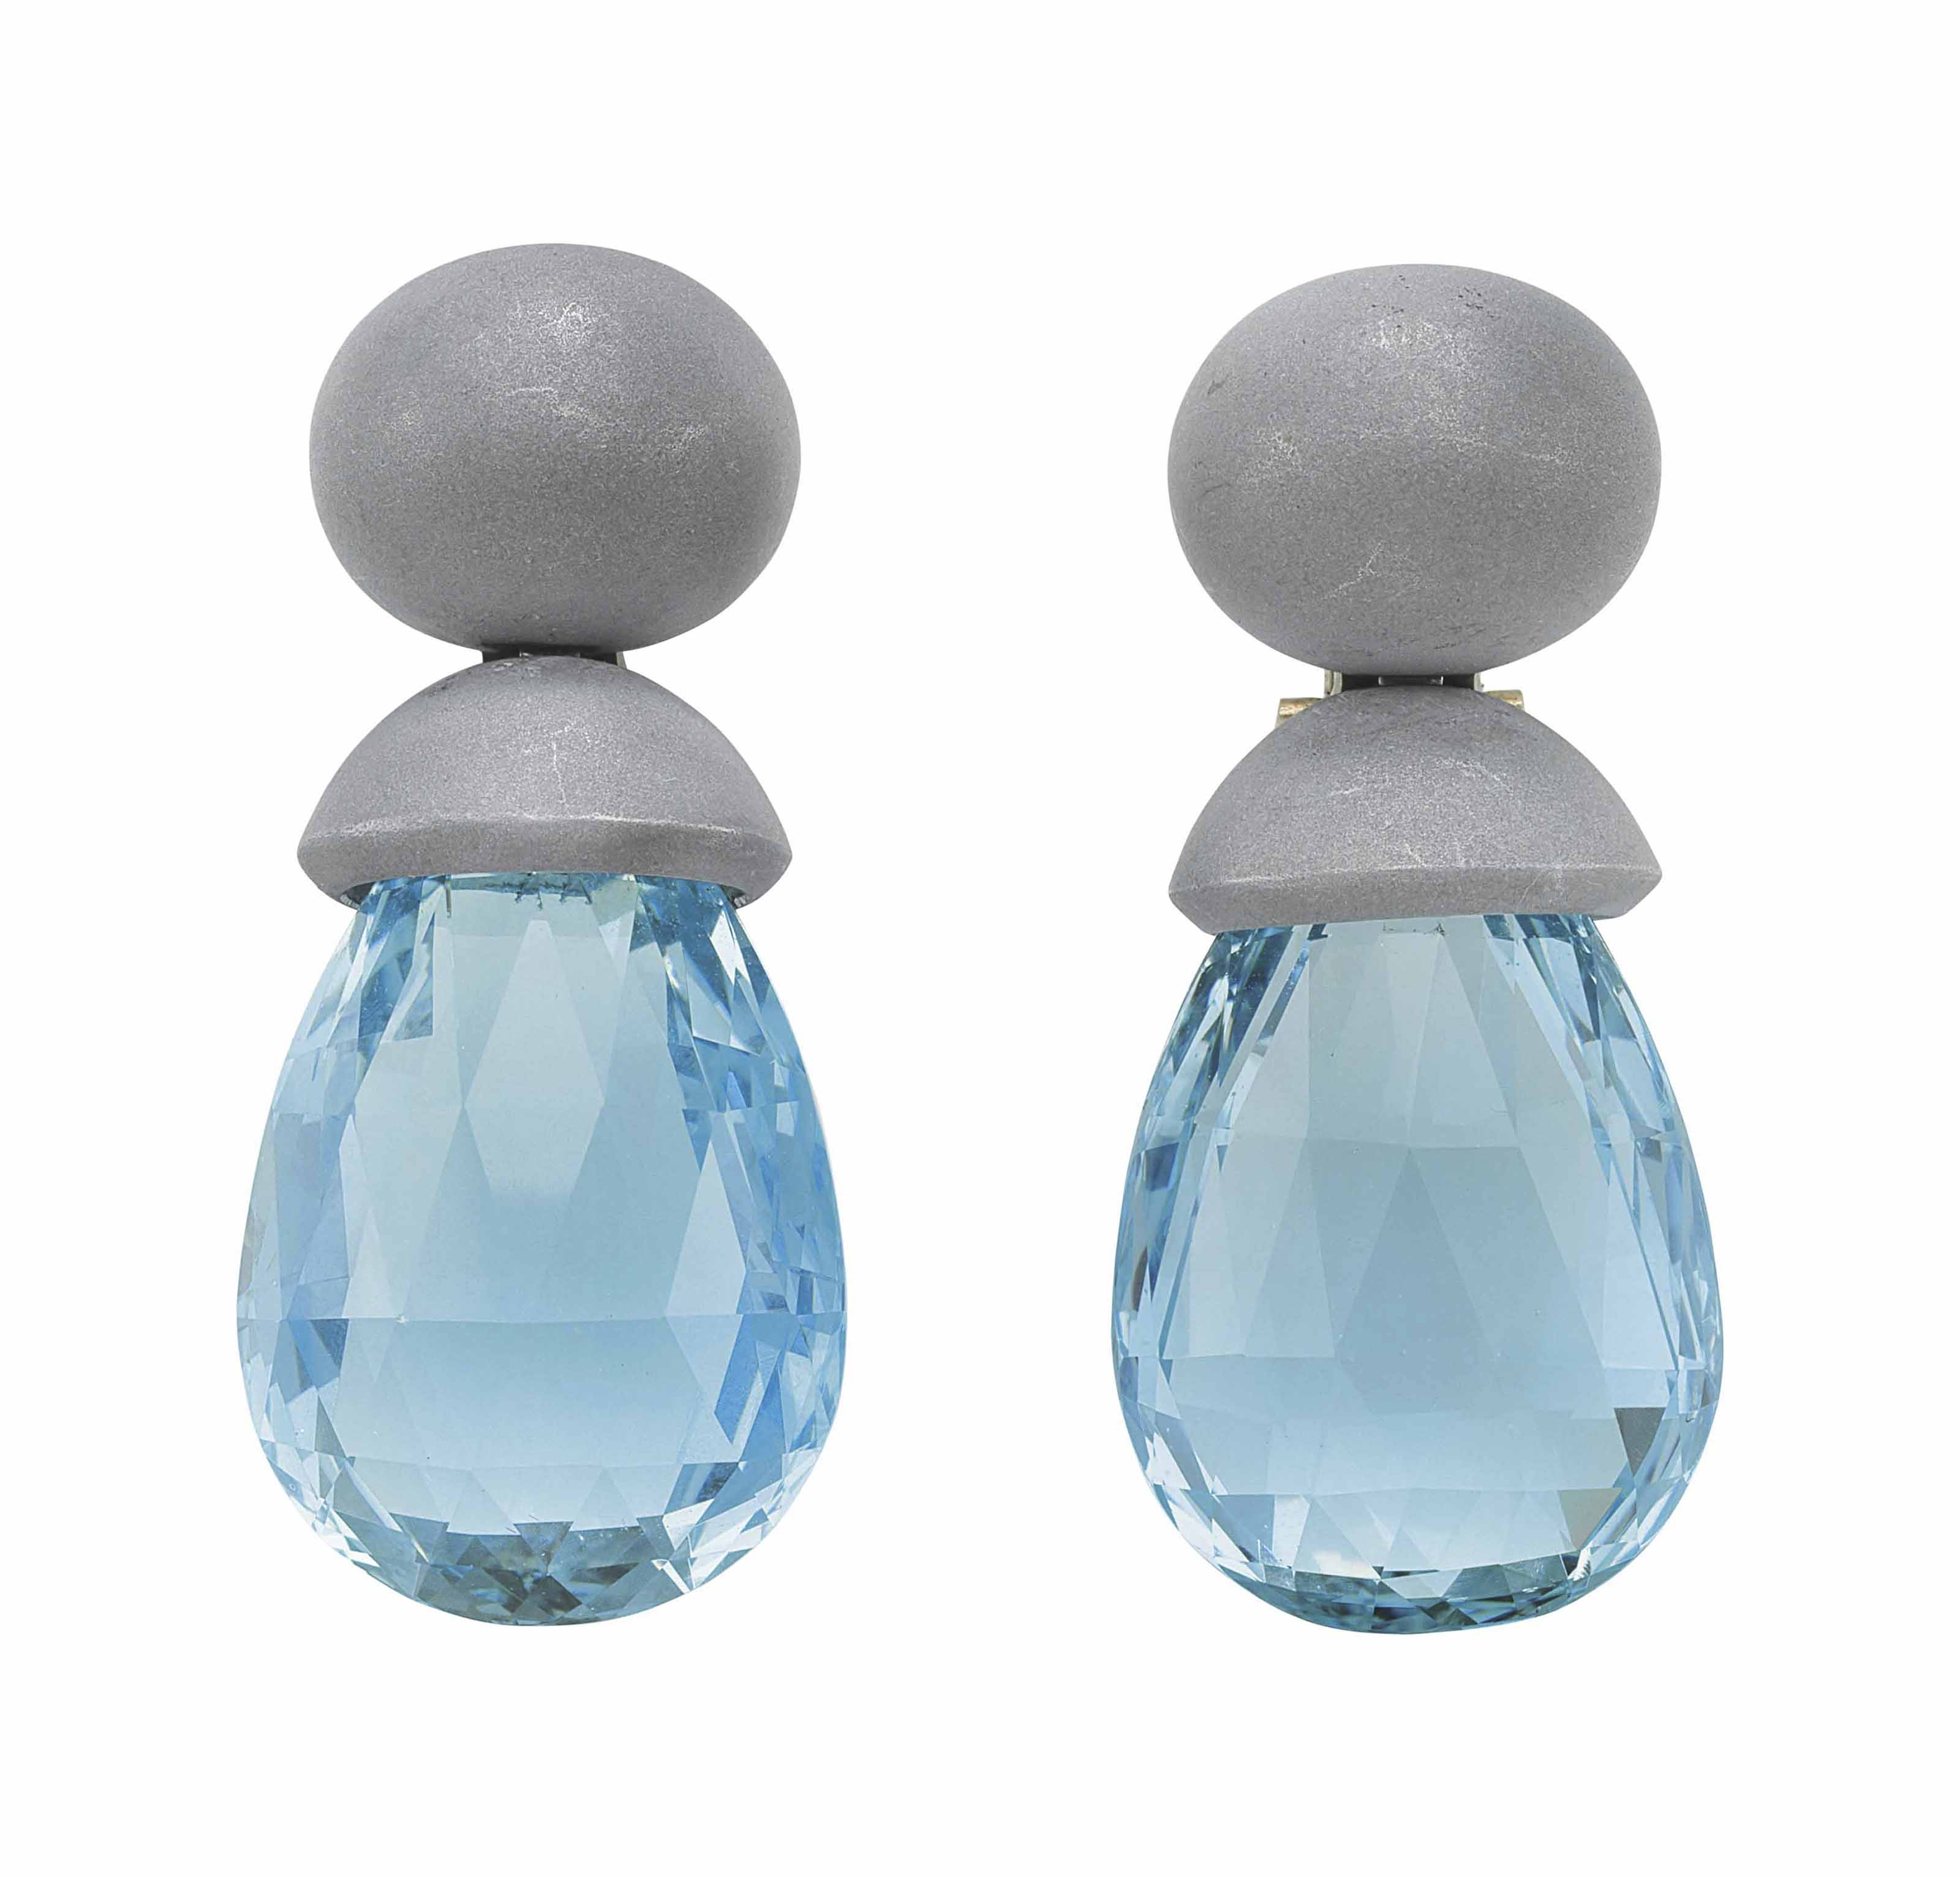 A PAIR OF AQUAMARINE AND ALUMINUM EARRINGS, BY HEMMERLE